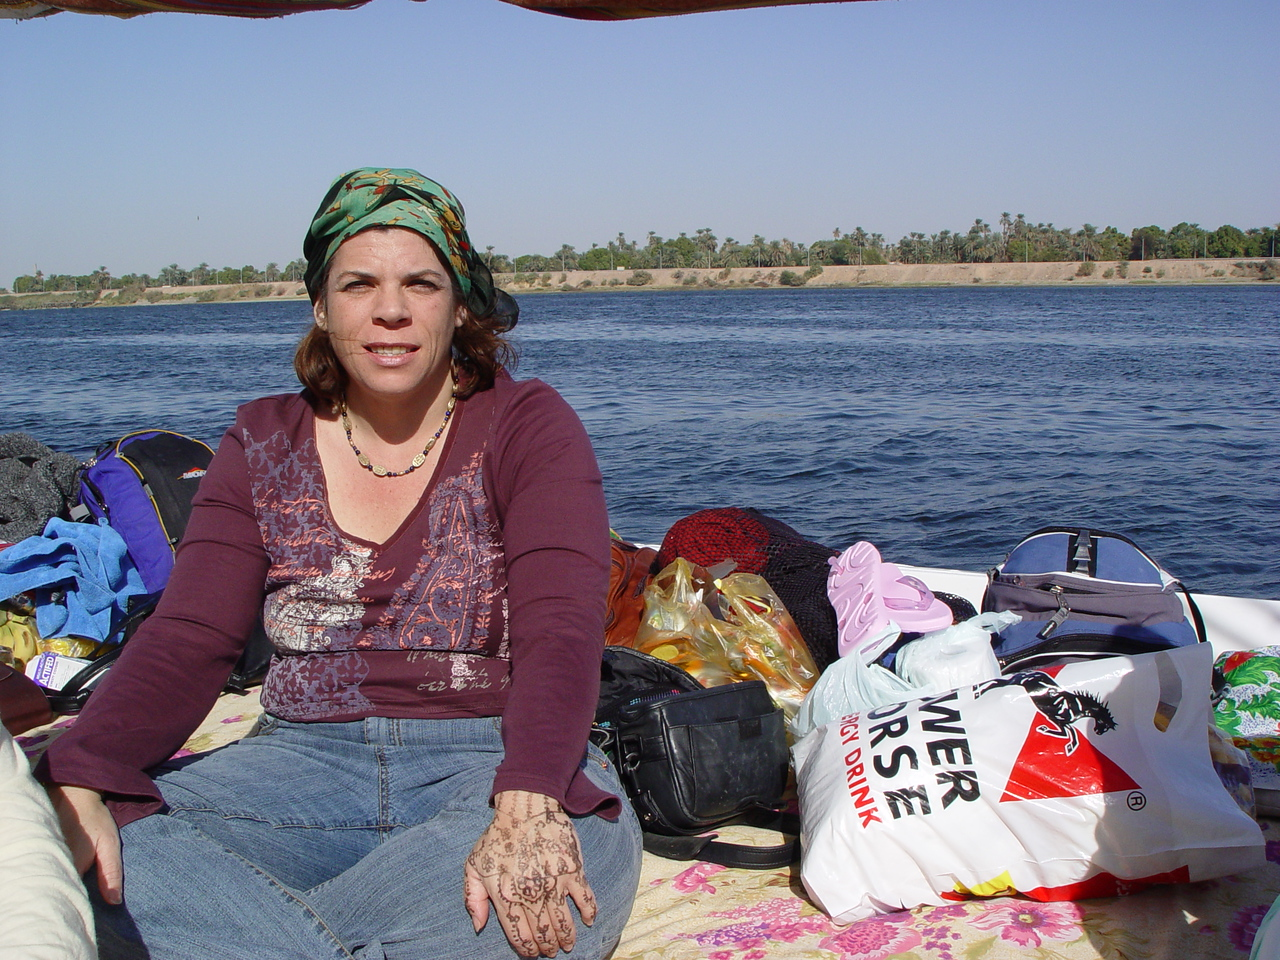 "b) Here I am, you can see the henna tattoo on my left hand from Sehel, the nubian island village. The felucca cruise is interesting in that we are sailing downstream with the current but against the wind. So we have to tack the sail which means traversing the nile from side to side to work our way to Luxor. This becomes a tactical problem when you have to avoid hitting the occasional larger cruise ship passing by. There is one point where there is this bridge where we have to lower the mast to avoid hitting the bridge. The crew gets a little frantic in their operation. Tony tells us that one felucca actually had the mast snap in half on the last tour. Brett refers to this as ""the bridge of death"""